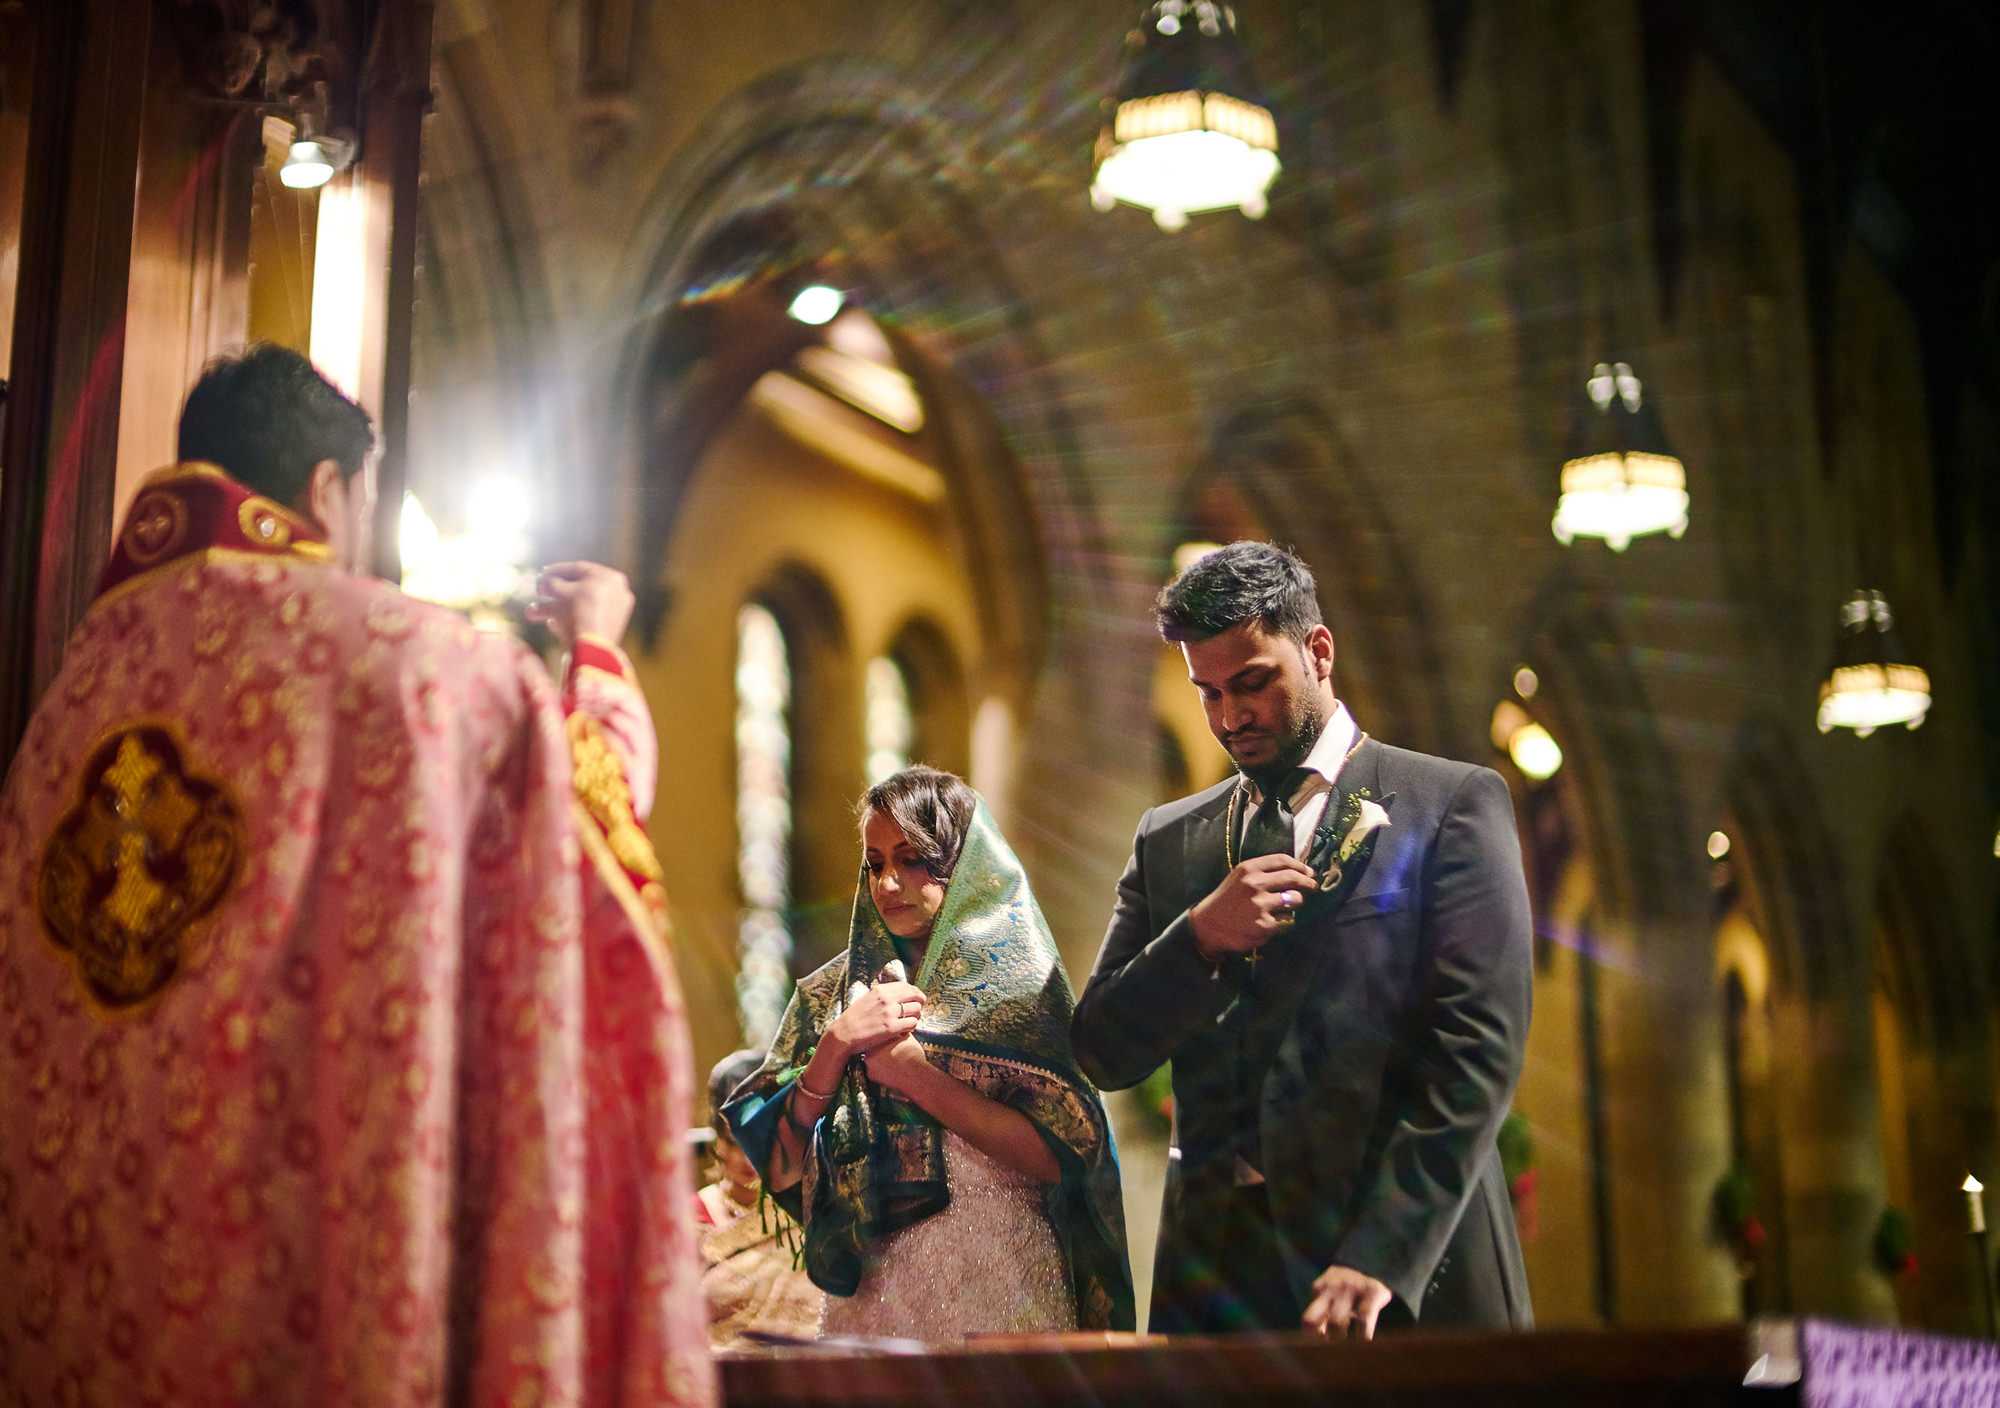 Bride and groom being blessed at Catholic church wedding ceremony, photo by The Brenizers